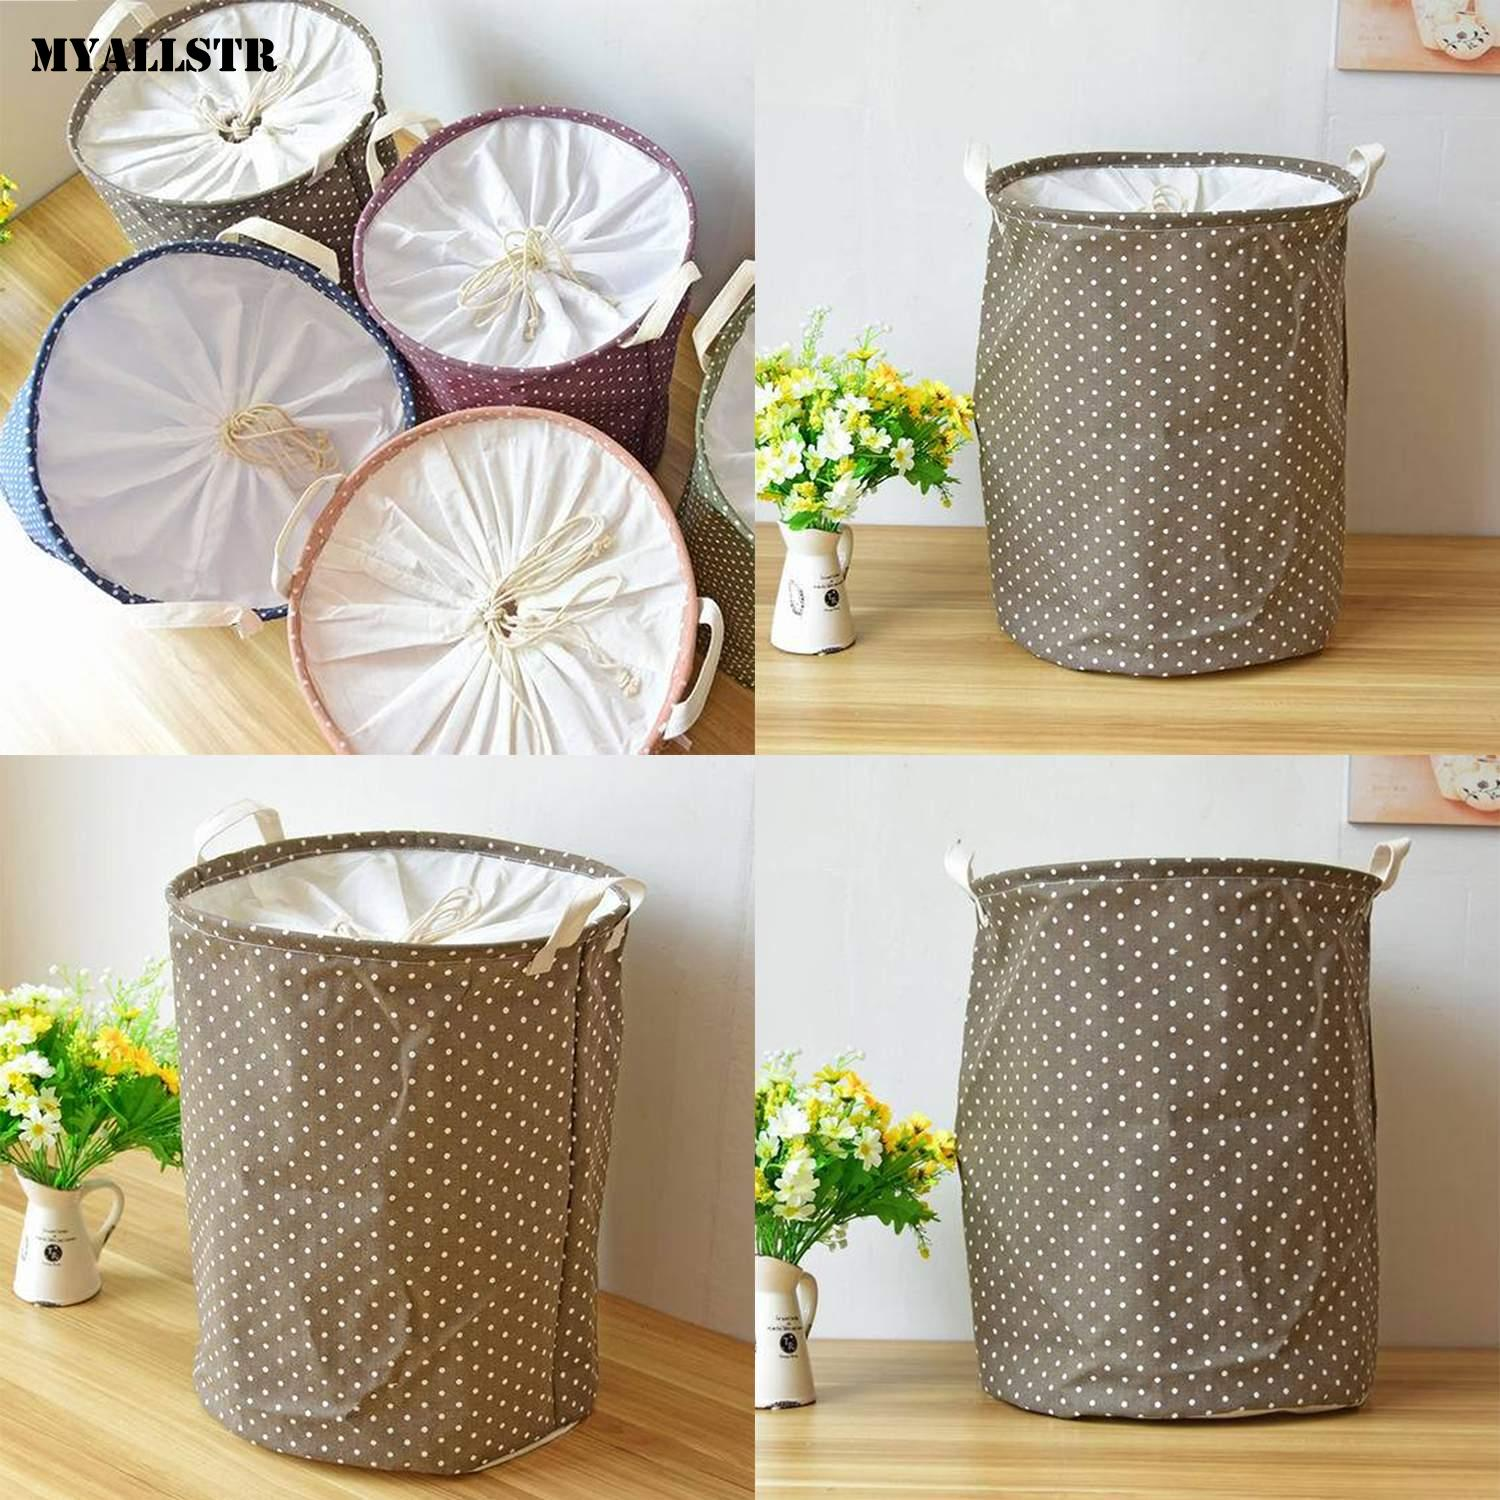 Multi-function Foldable Waterproof Laundry Basket Toys Coffee Storage Bucket Dot 300g Indoor With Cover